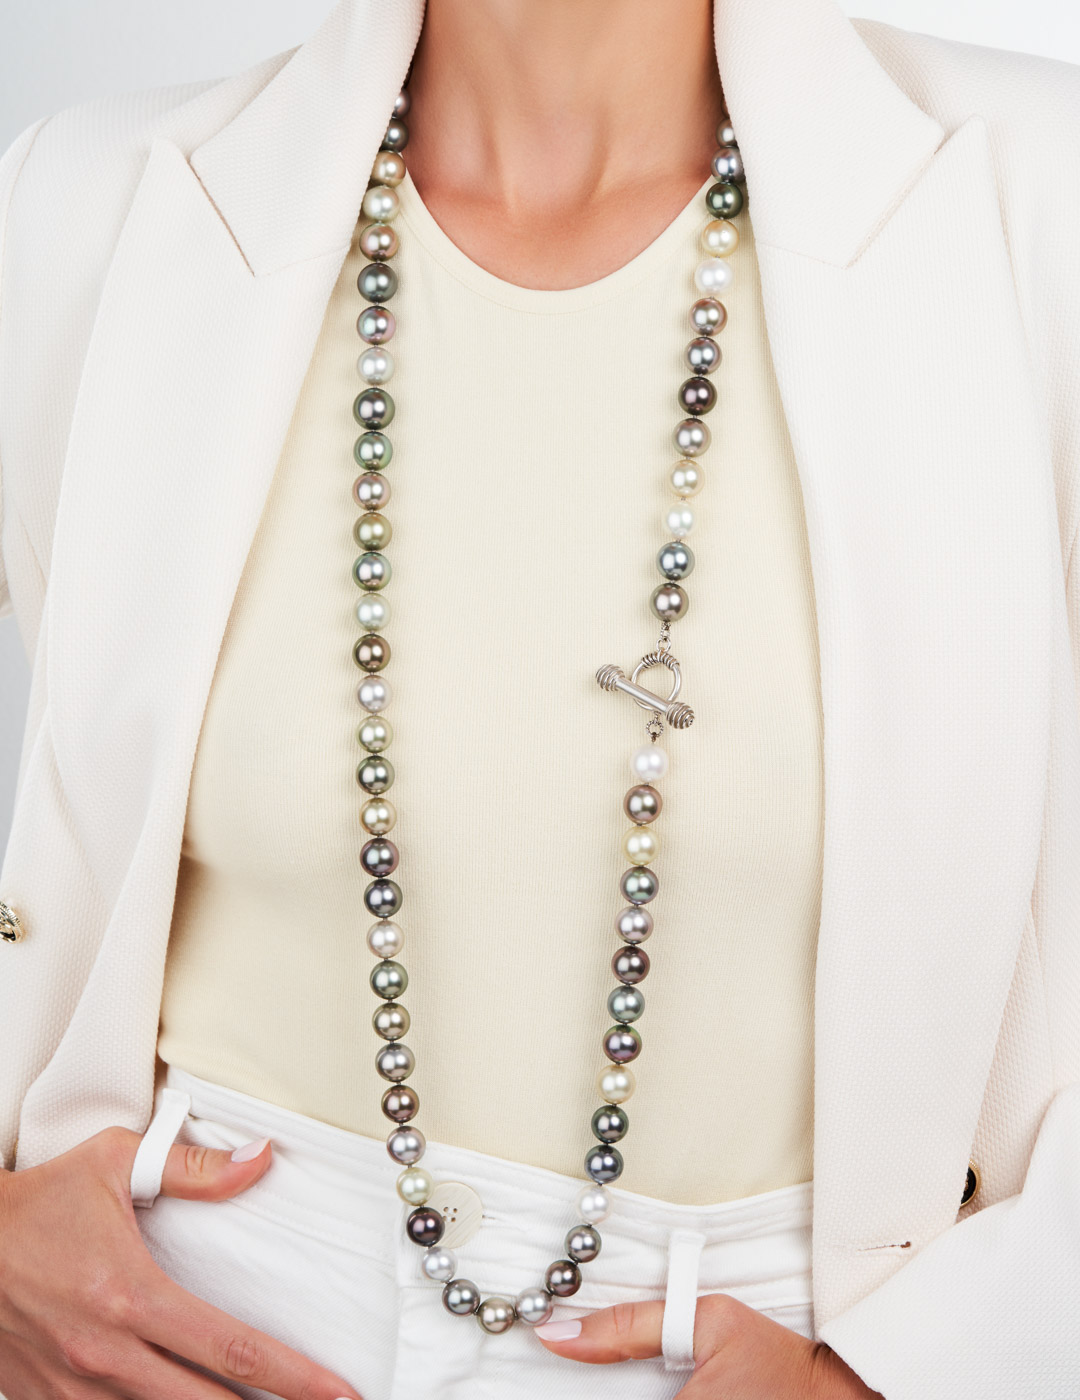 mish_necklaces_Multi Pearl-Orbiting-NK-2